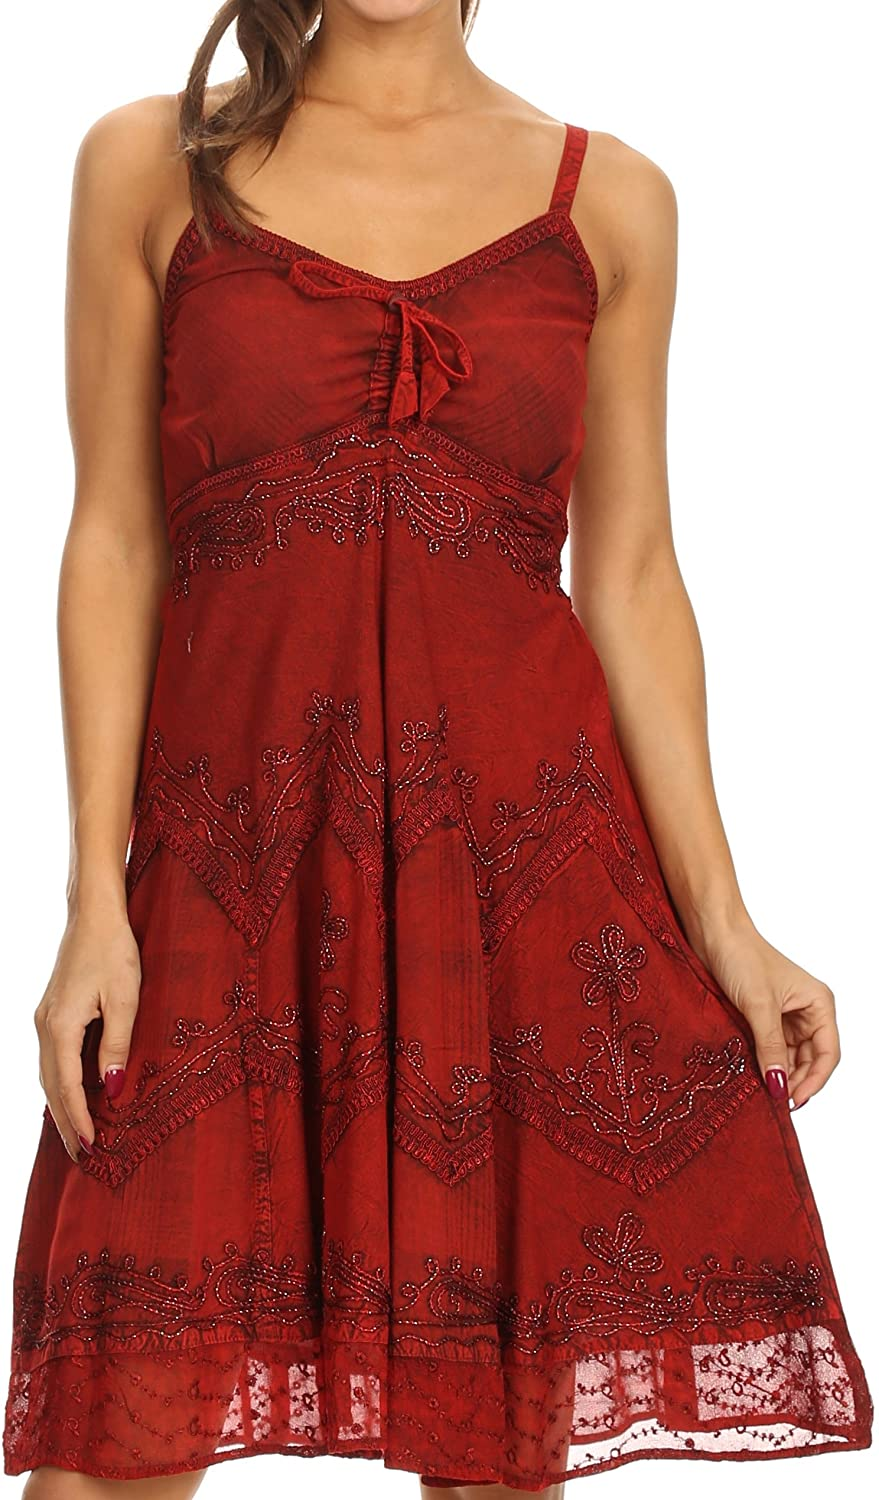 Sakkas Lacey Stonewashed Embroidered Silver Threaded Spaghetti Strap Dress